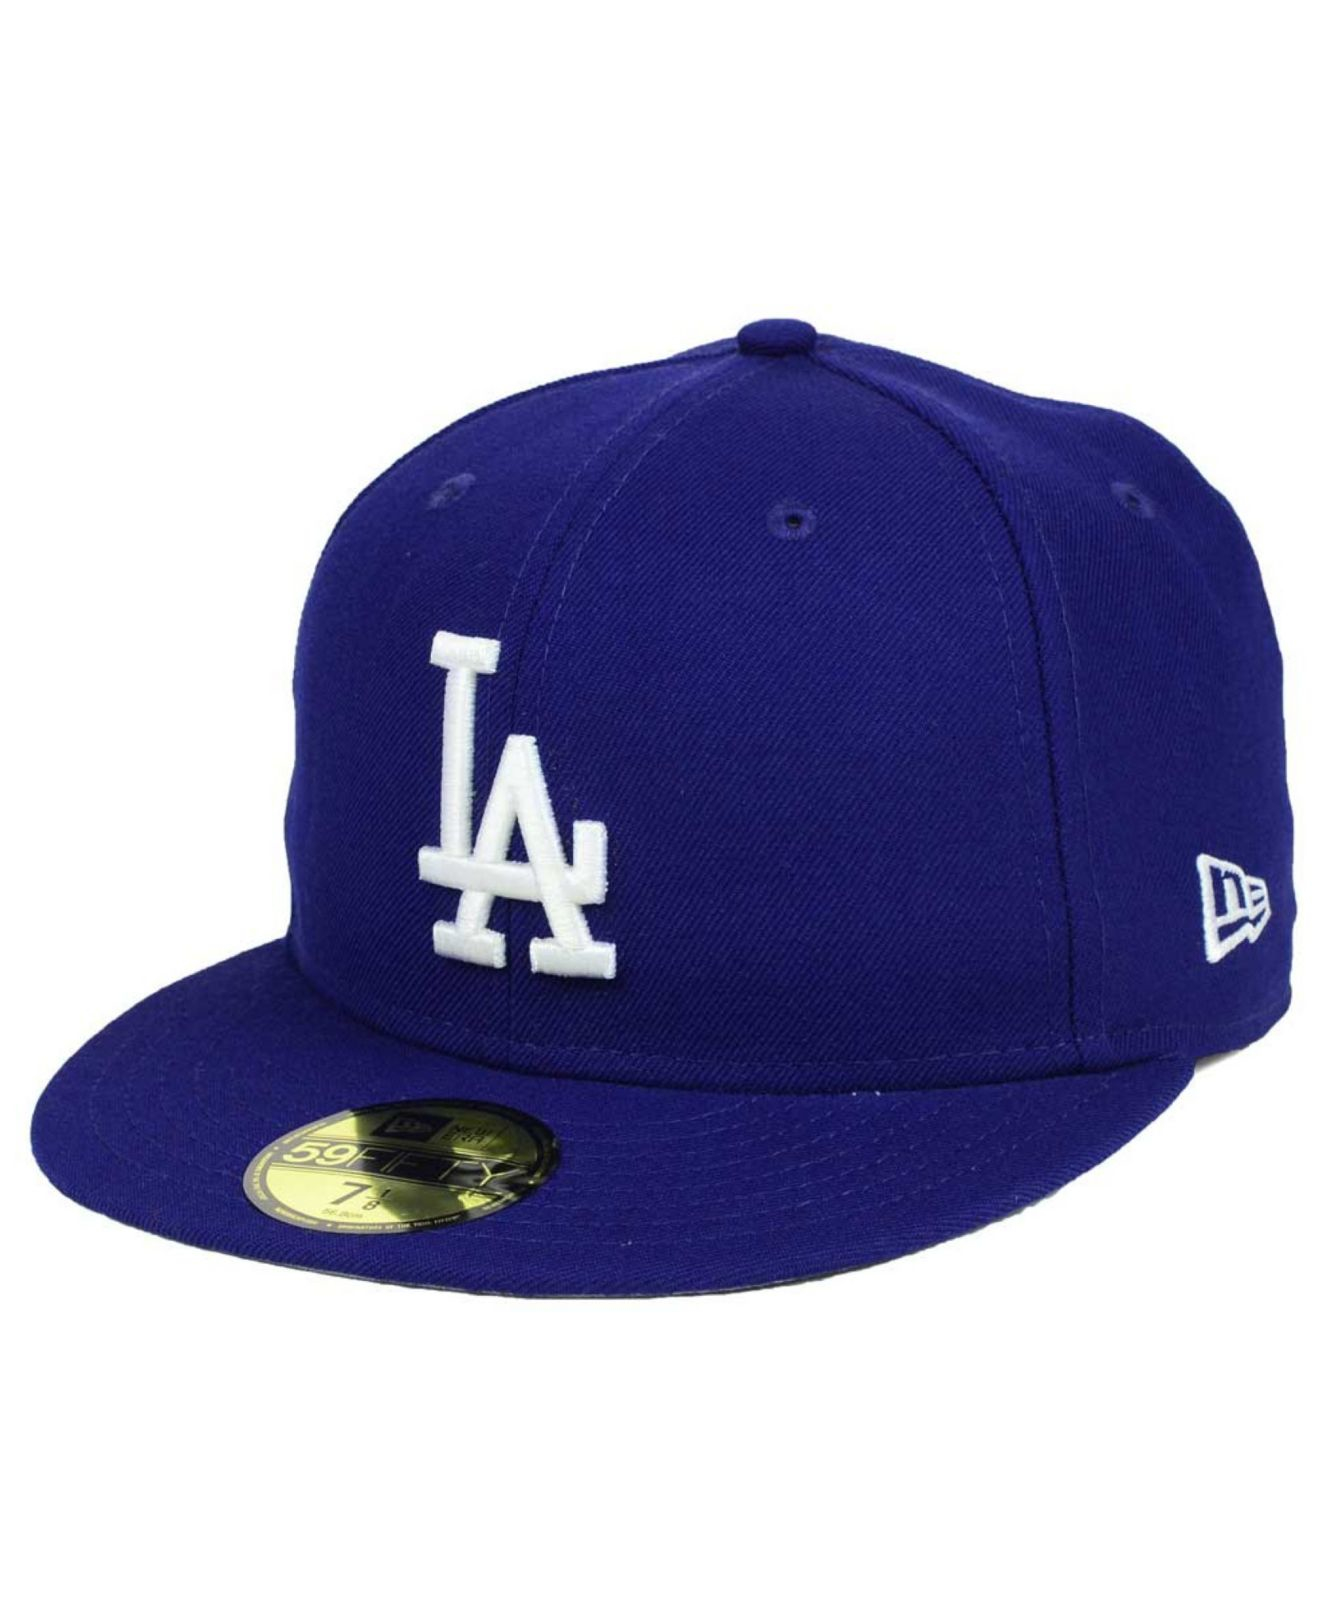 79f6388d2e6 Gallery. Previously sold at  Macy s · Men s Wide Brim Hats Men s New Era  59fifty ...